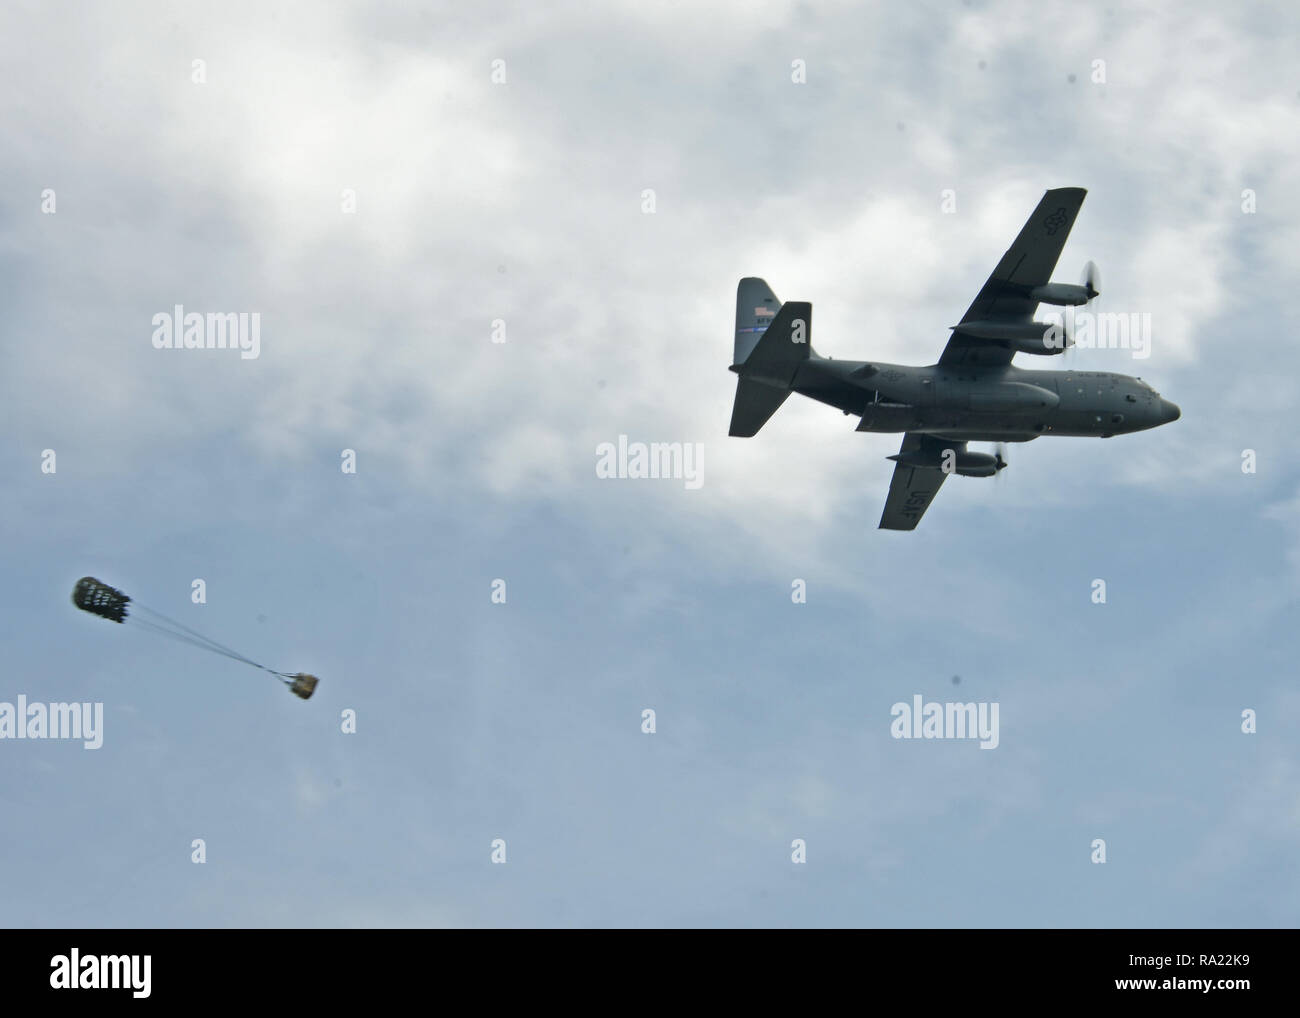 A C-130 Hercules aircraft from the 94th Airlift Wing conducts an Airdrop at Youngstown Air Reserve Station, August 9, 2018. The airdrop was part of a drop competition that the 908th Aerial Squadron, 700th AS, and 757th AS took part in during Tac Week. (U.S. Air Force photo by Staff Sgt. Miles Wilson) - Stock Image